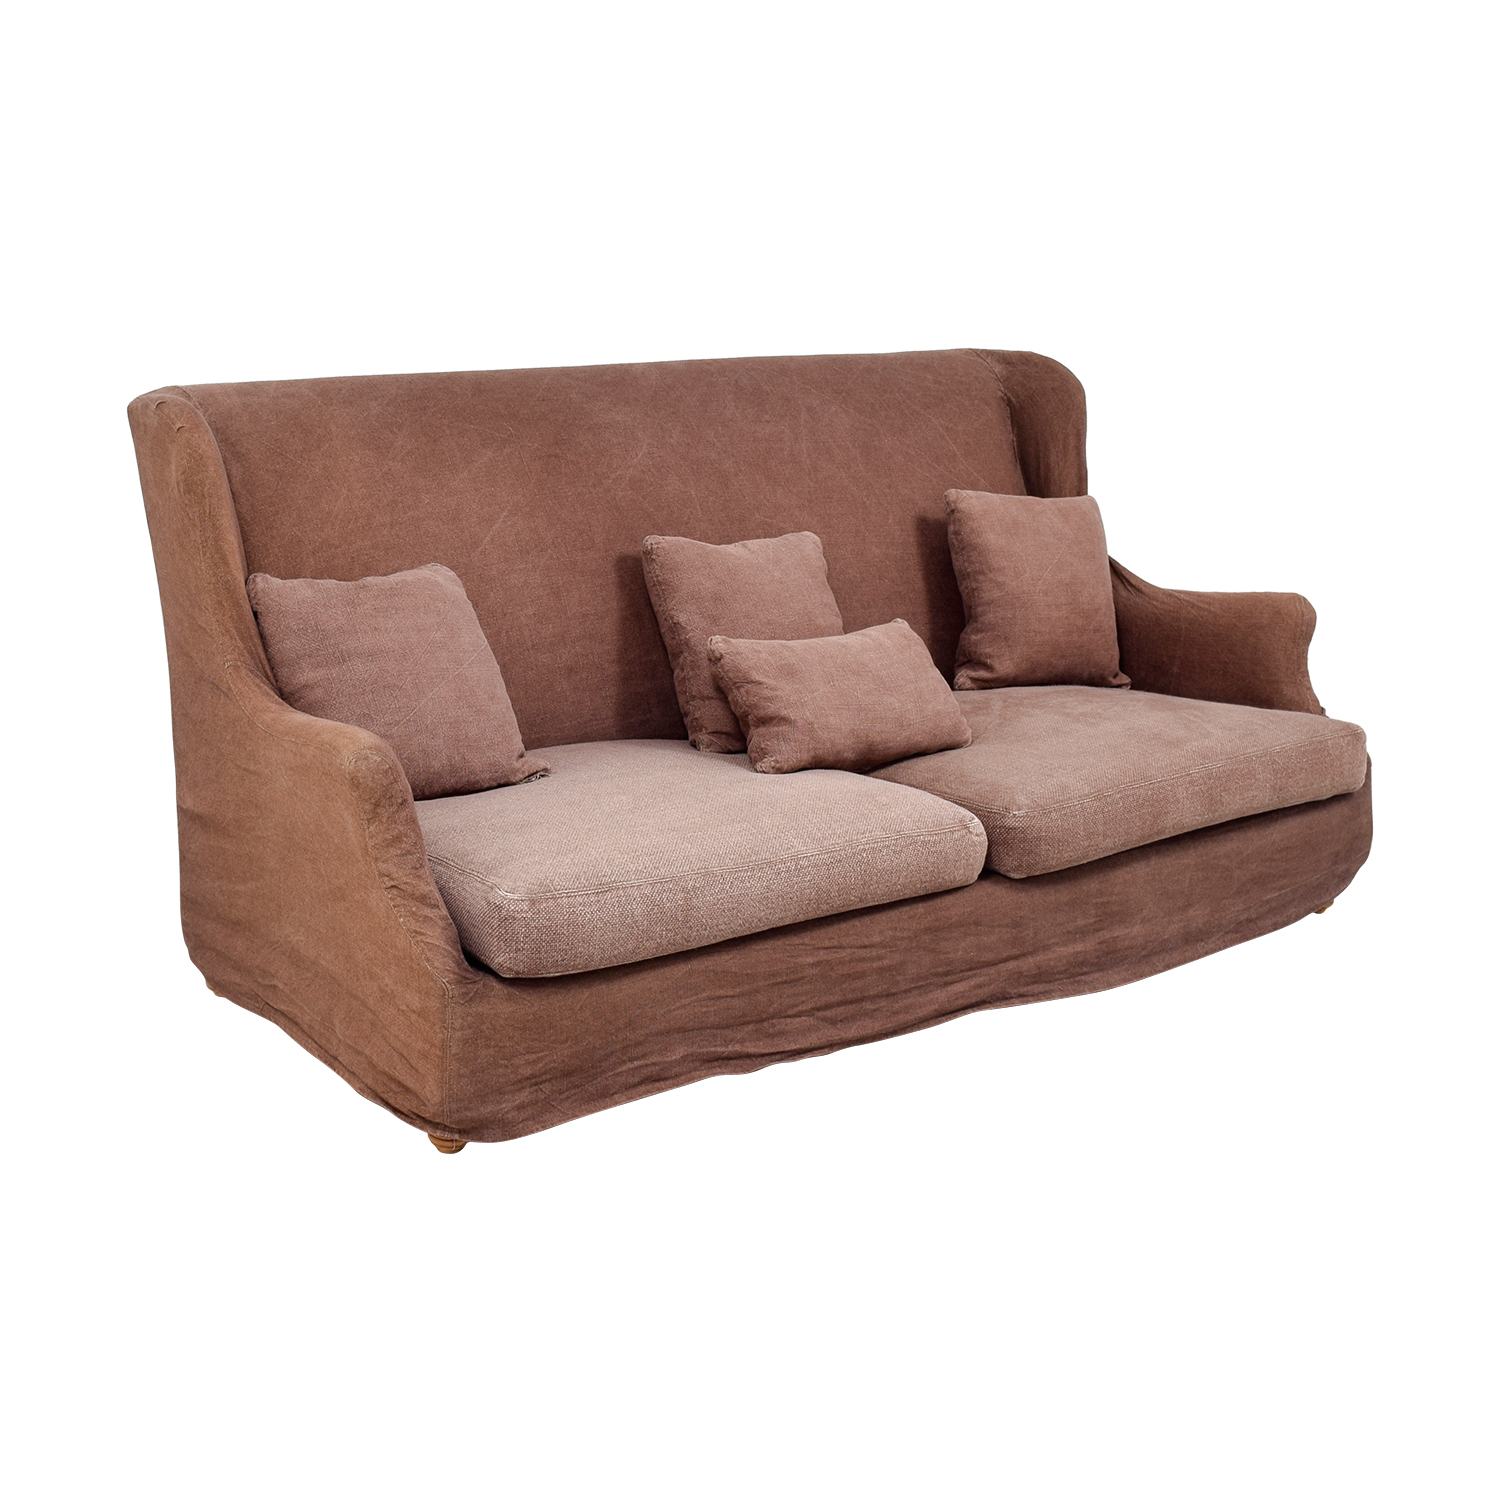 62% OFF - ABC Carpet & Home ABC Carpet & Home Brown Washed Linen  Slipcovered Sofa / Sofas